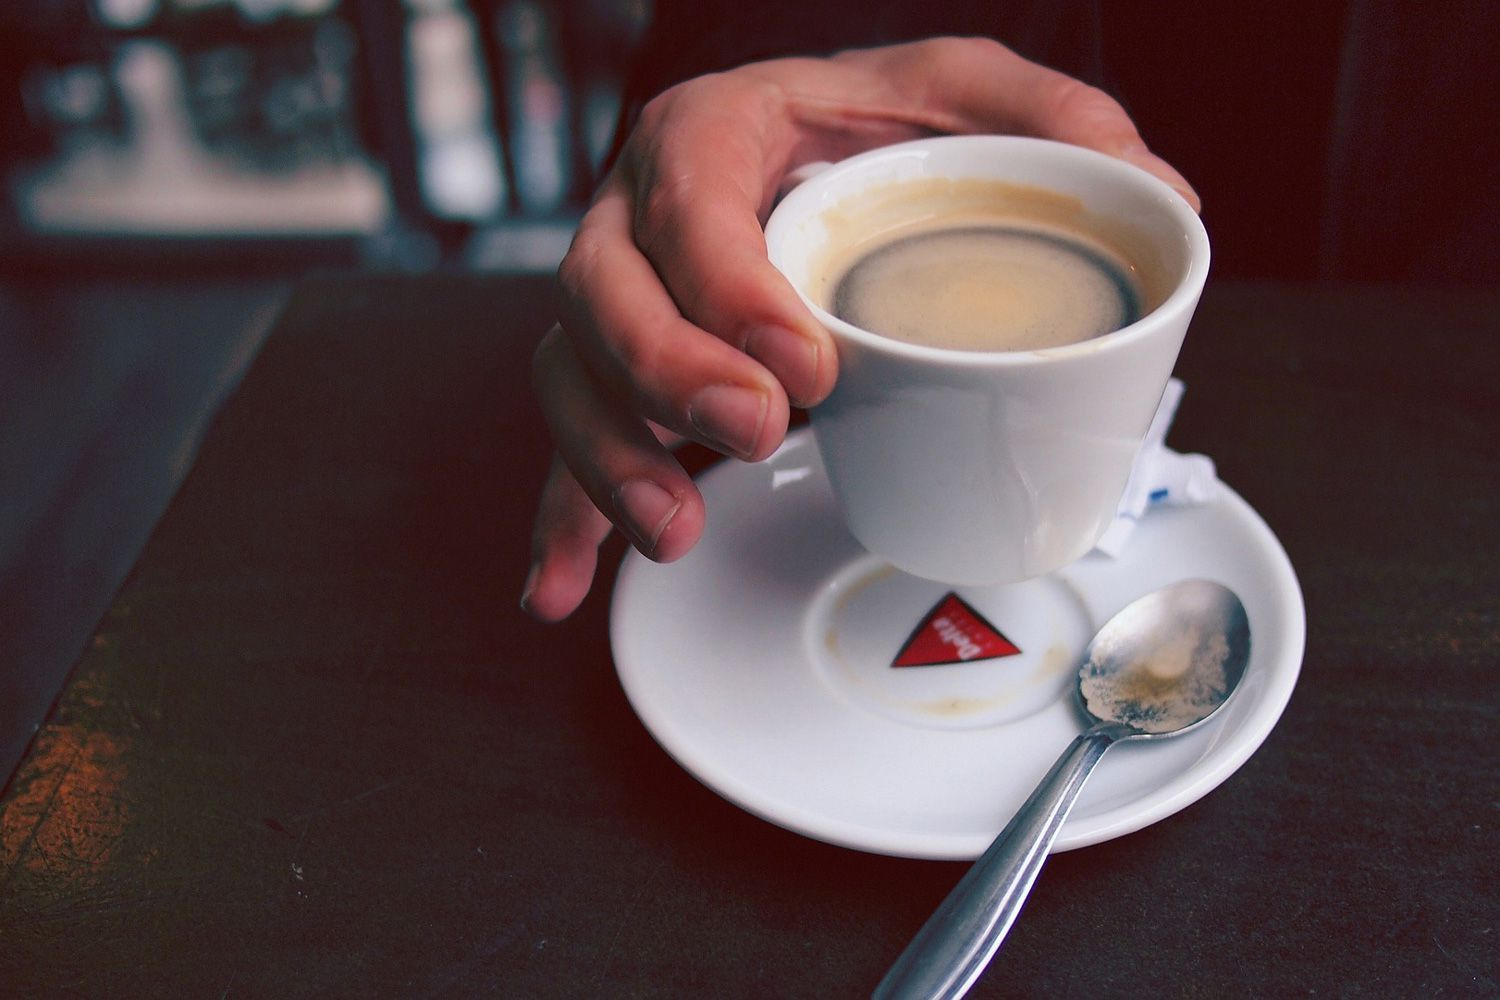 How to Order the Perfect Cup of Coffee and 4 More Links You Can't Miss How to Order the Perfect Cup of Coffee and 4 More Links You Can't Miss new picture